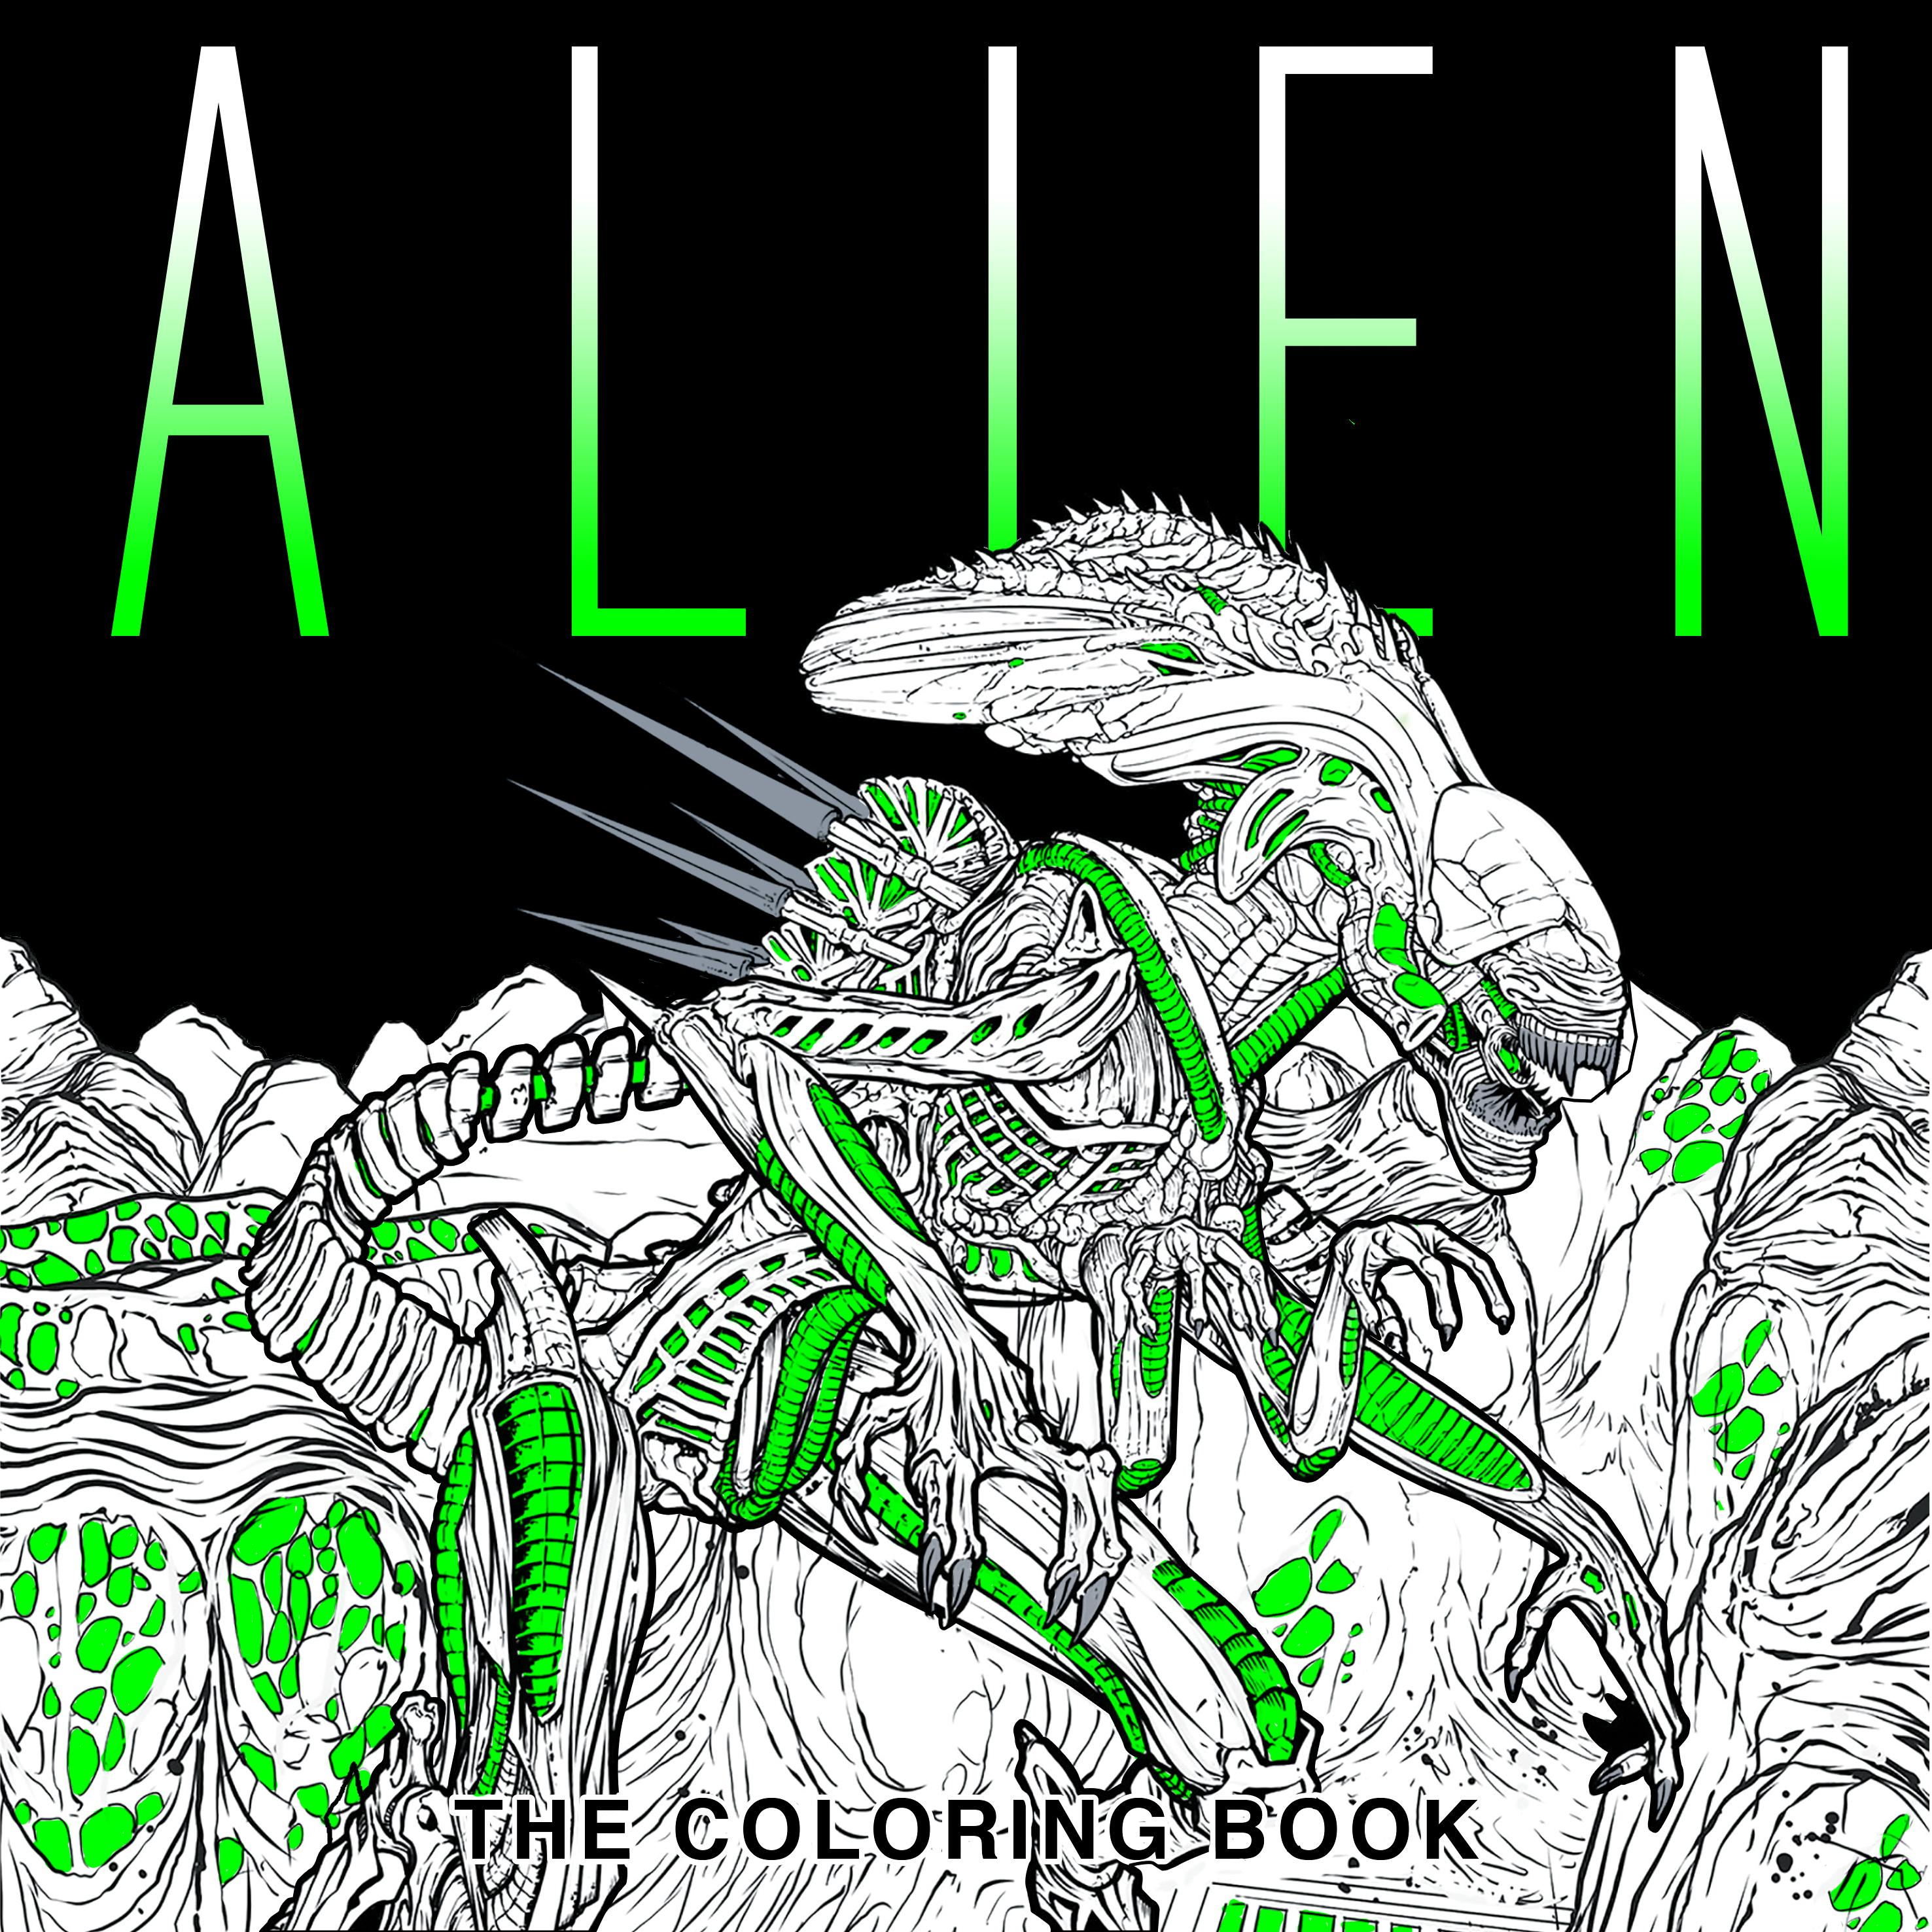 NEWS) Alien: The Coloring Book - Alien: Covenant & Sequel Movie News